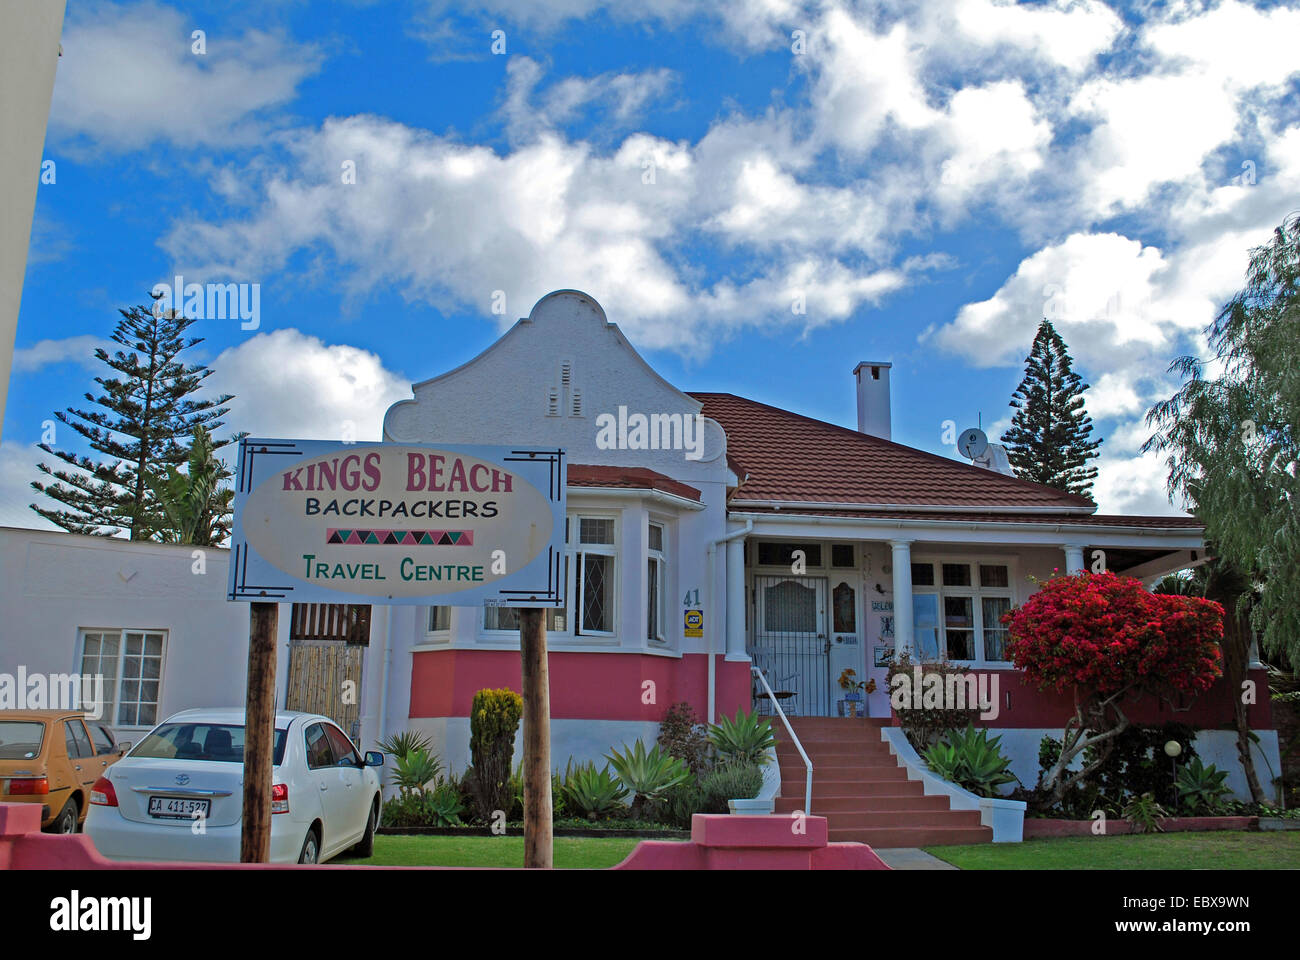 backpackers travel centre, South Africa, Port Elizabeth - Stock Image